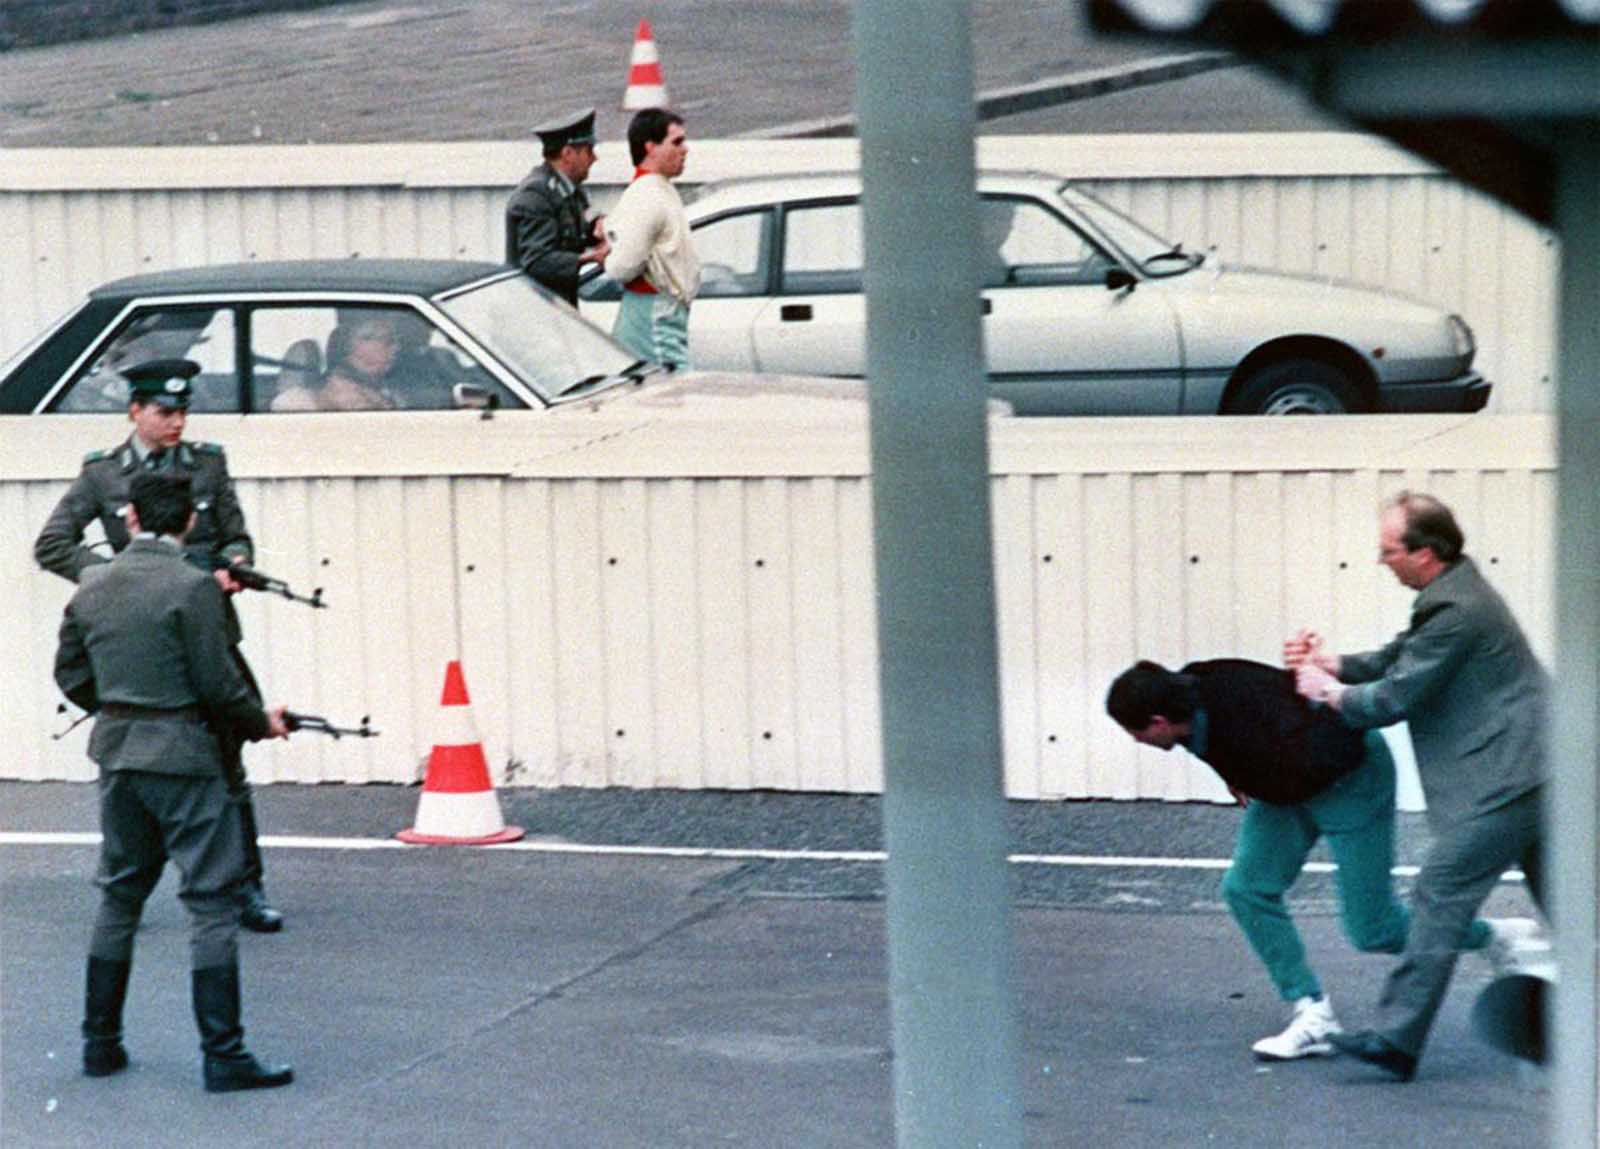 (2 of 3) Two East Berlin refugees are taken away by border guards after a thwarted escape attempt at Berlin border crossing Chausseestreet, in this April 1989 picture.